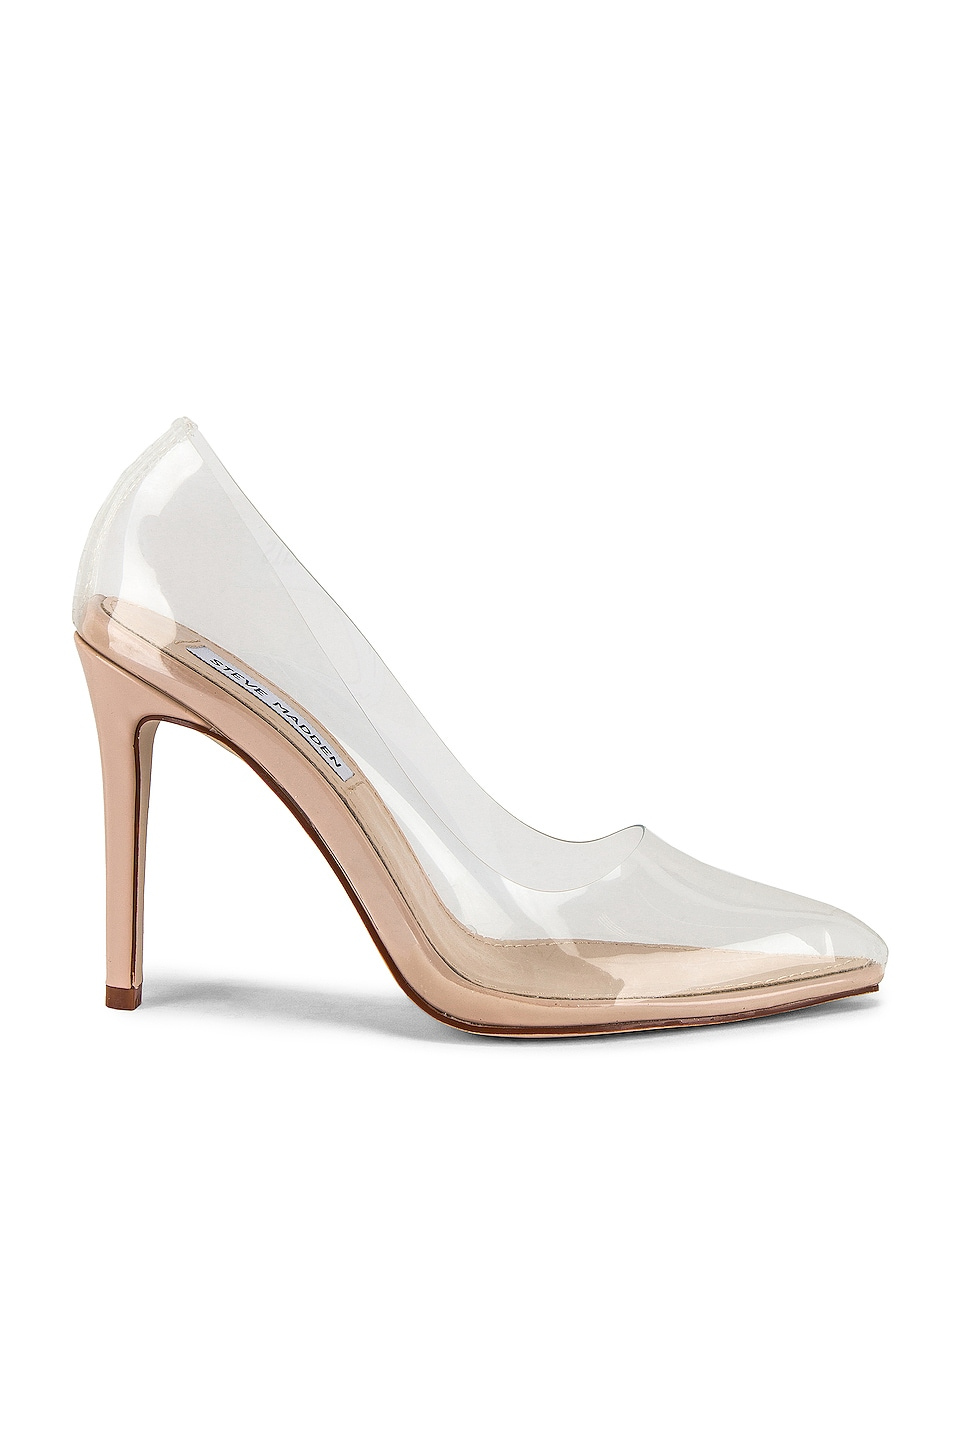 Steve Madden Vegas Pump in Clear